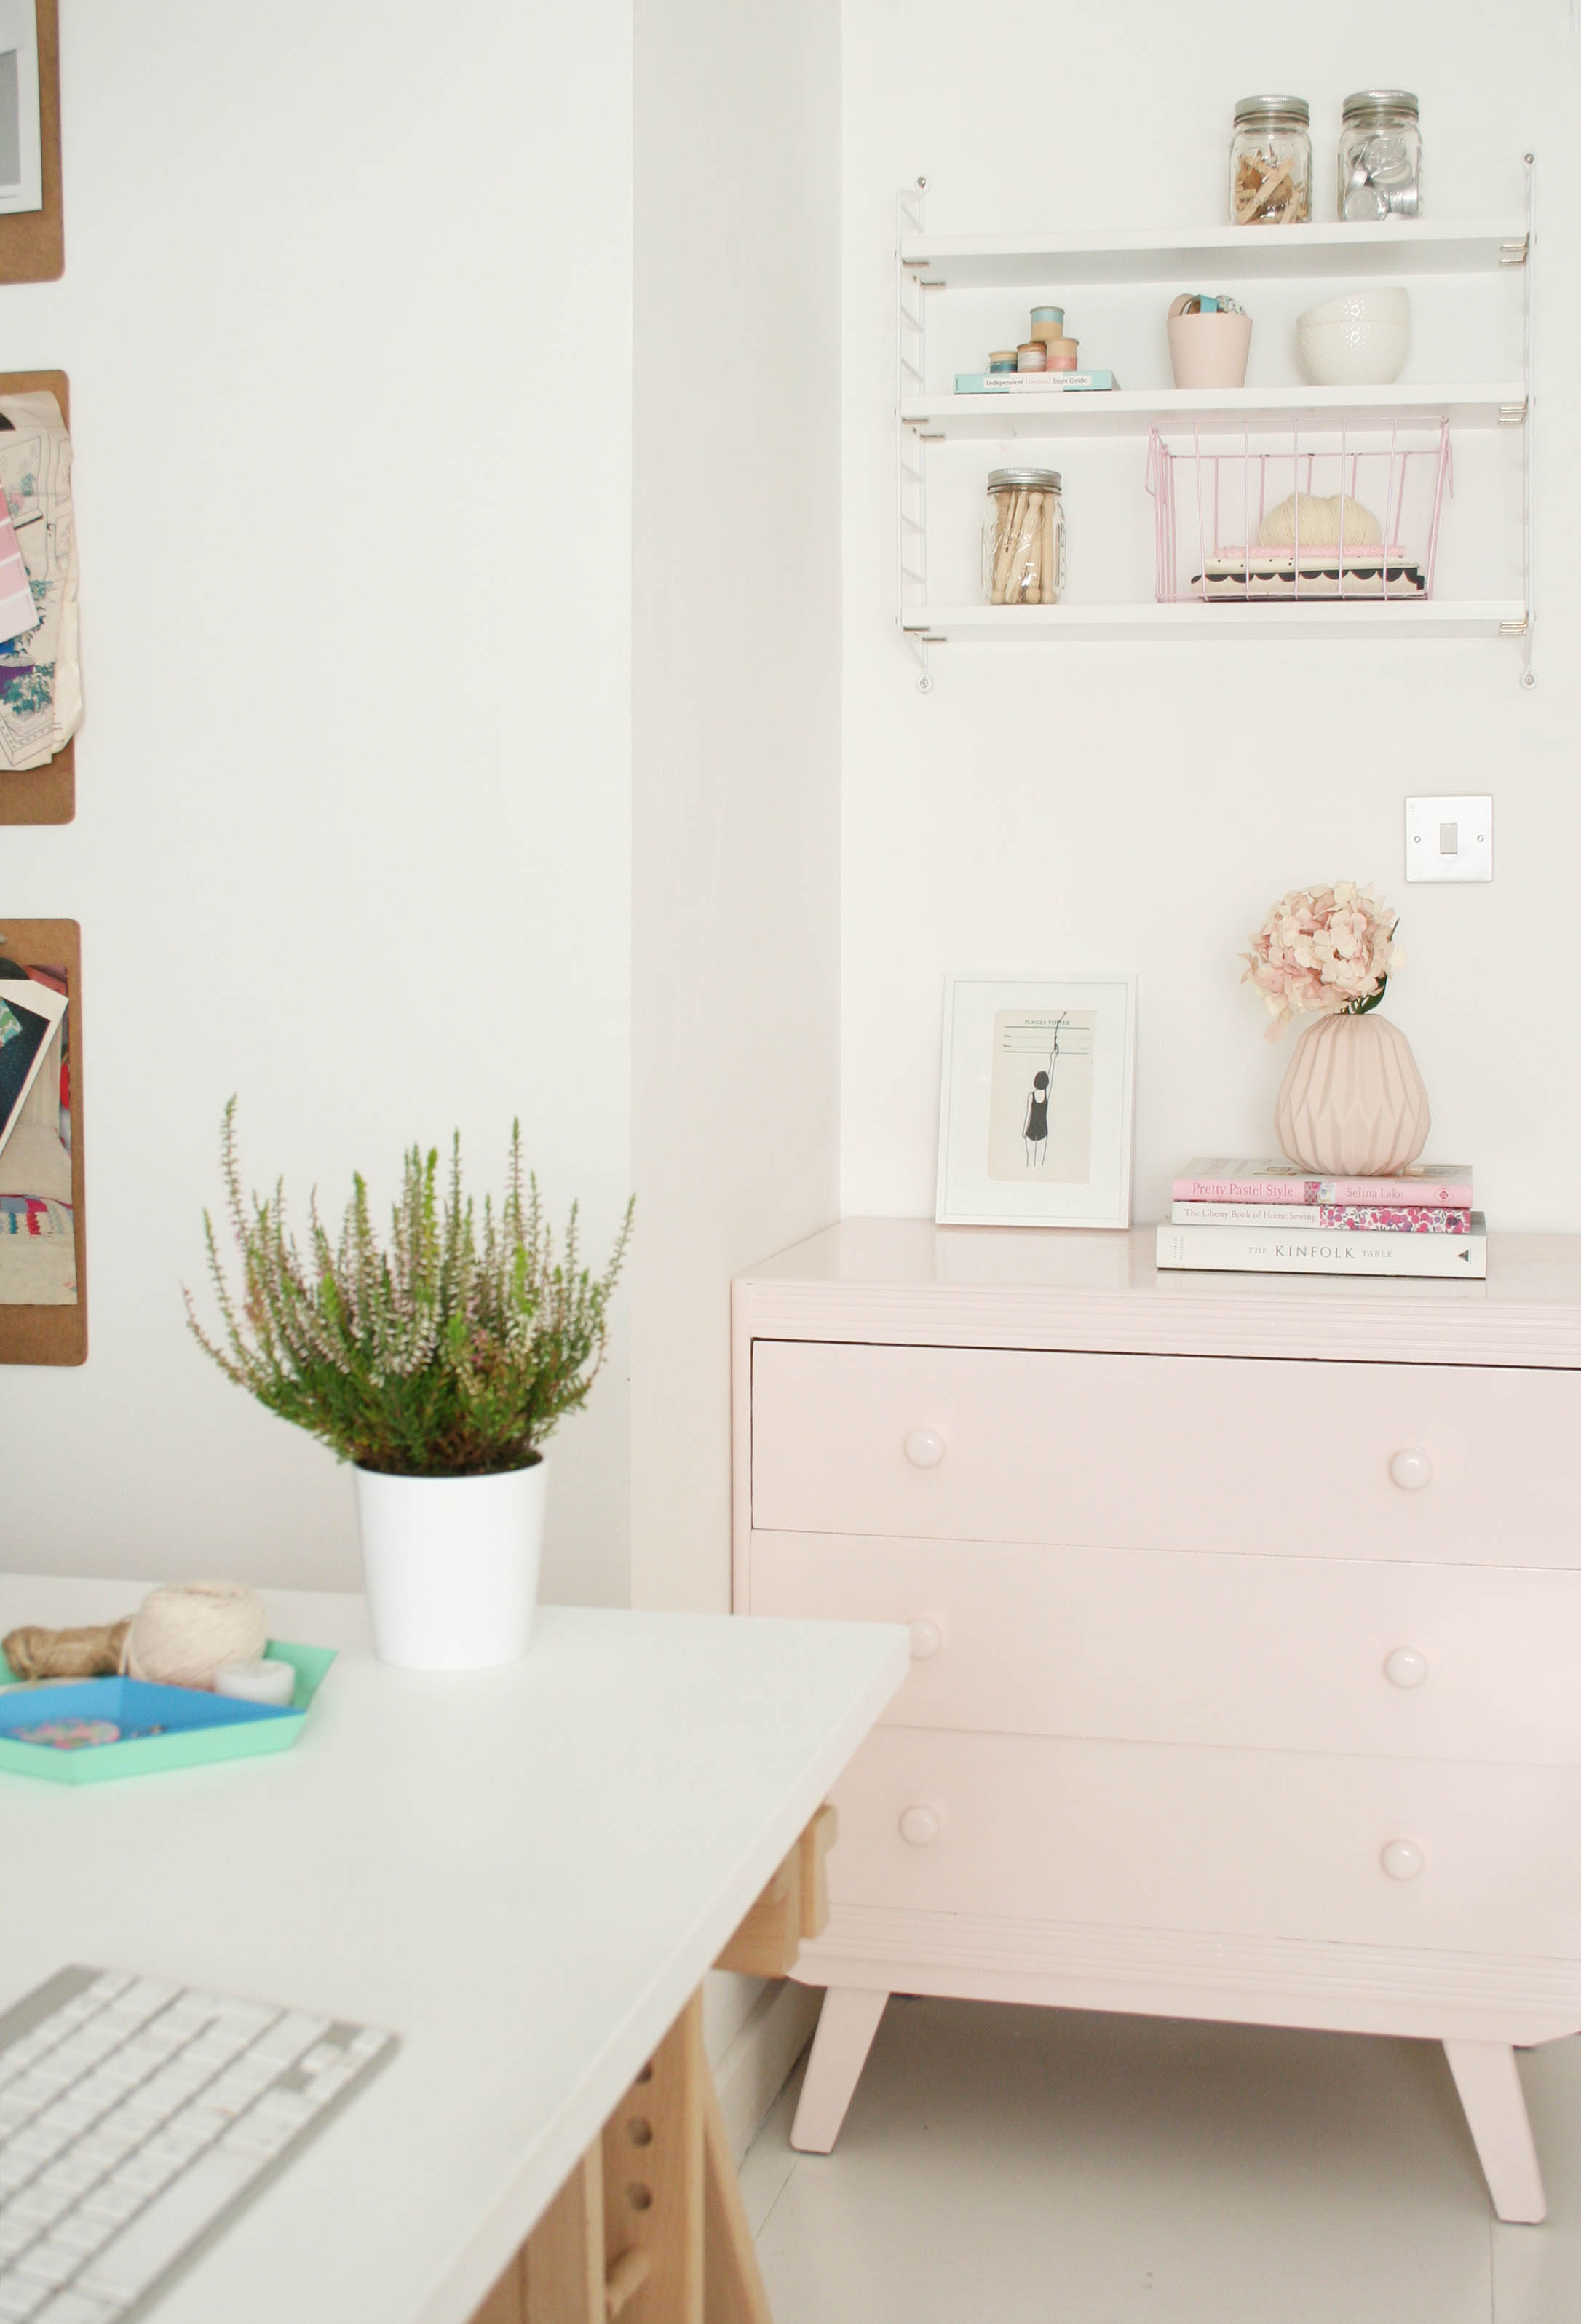 Dulux Visualizer App | Painted drawers | Home office | Quick makeover | Pastel pink furniture